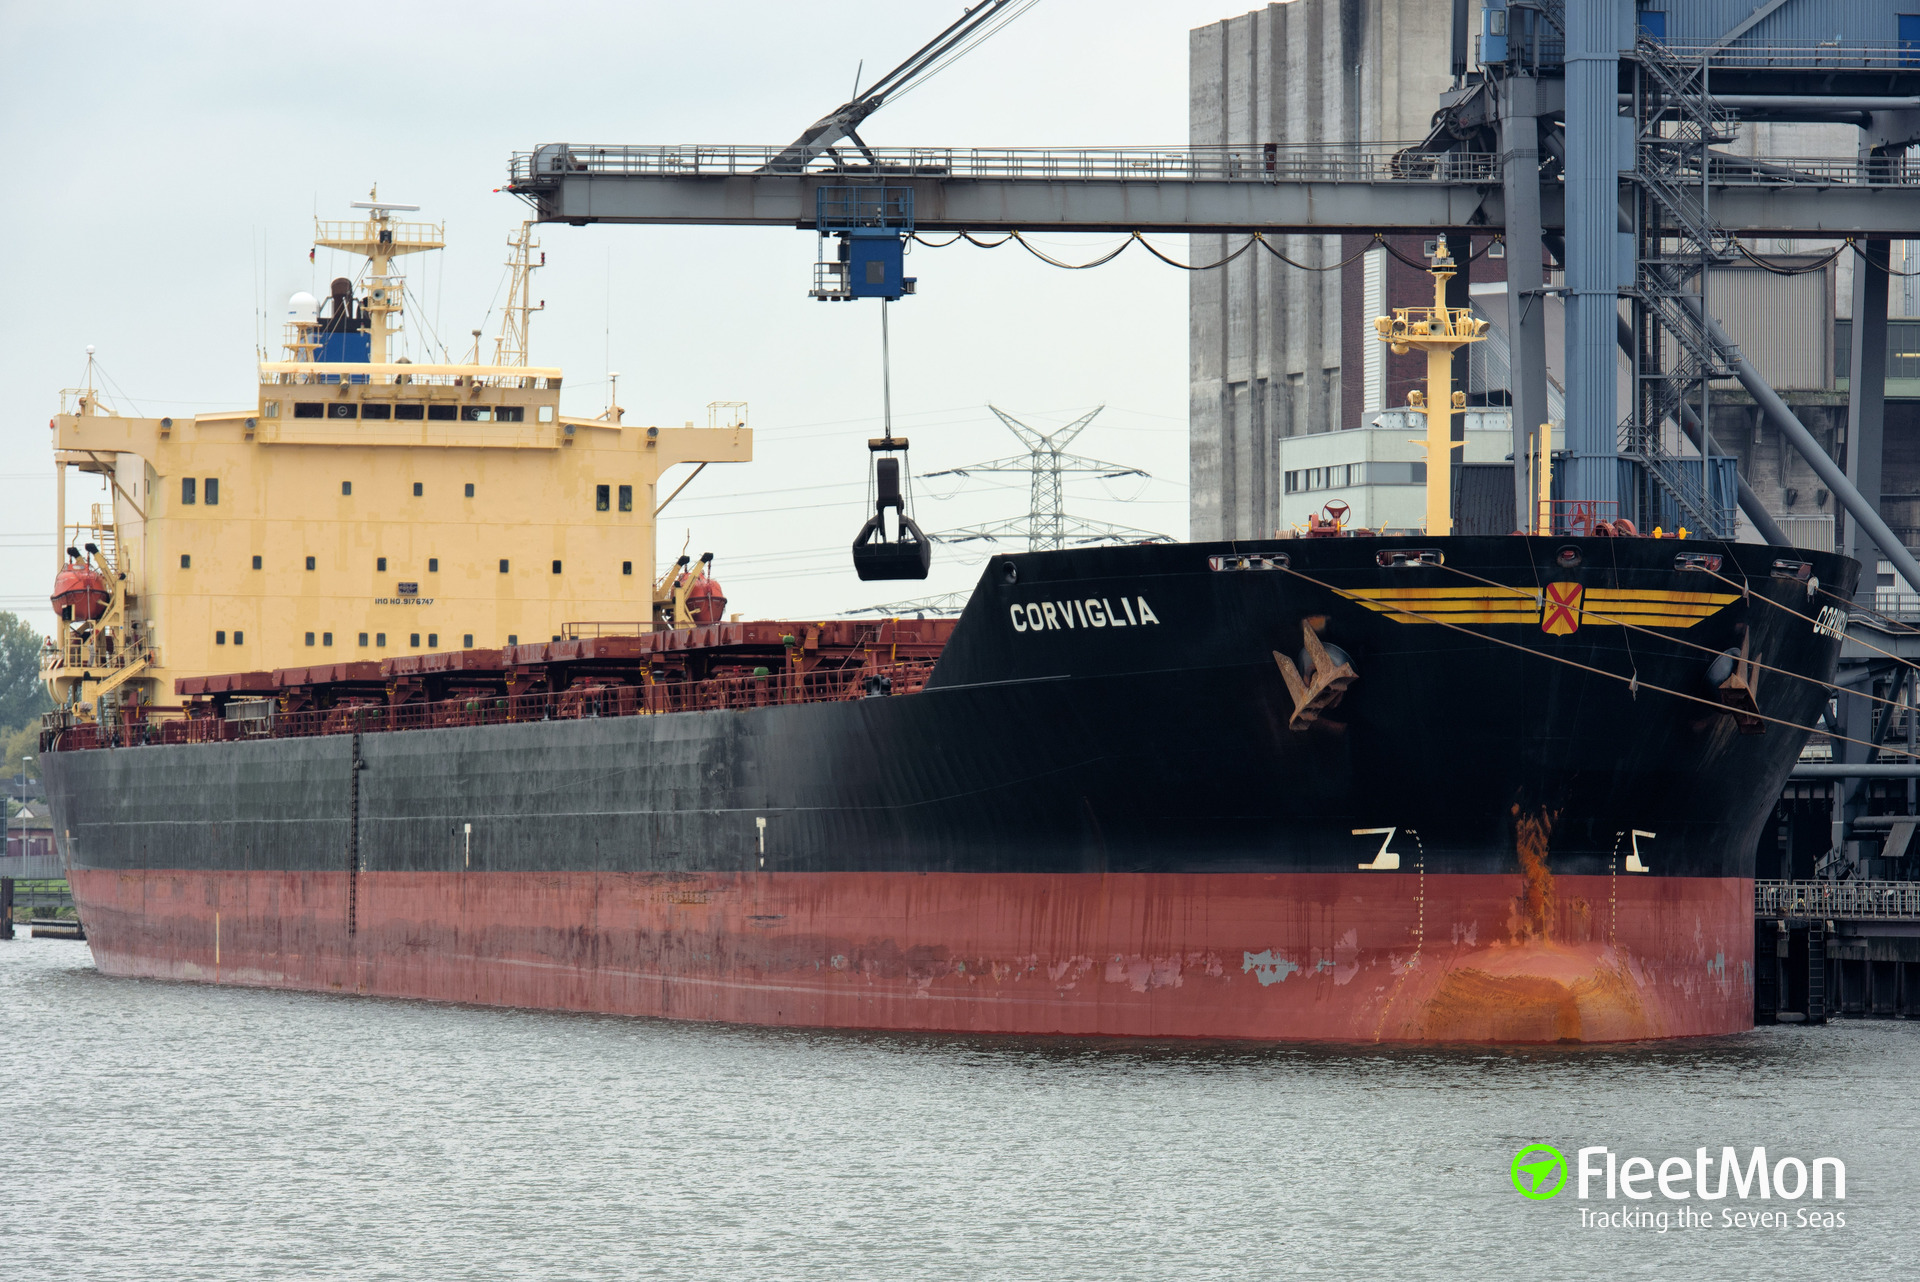 Bulk carrier Corviglia aground and refloated, Oregon